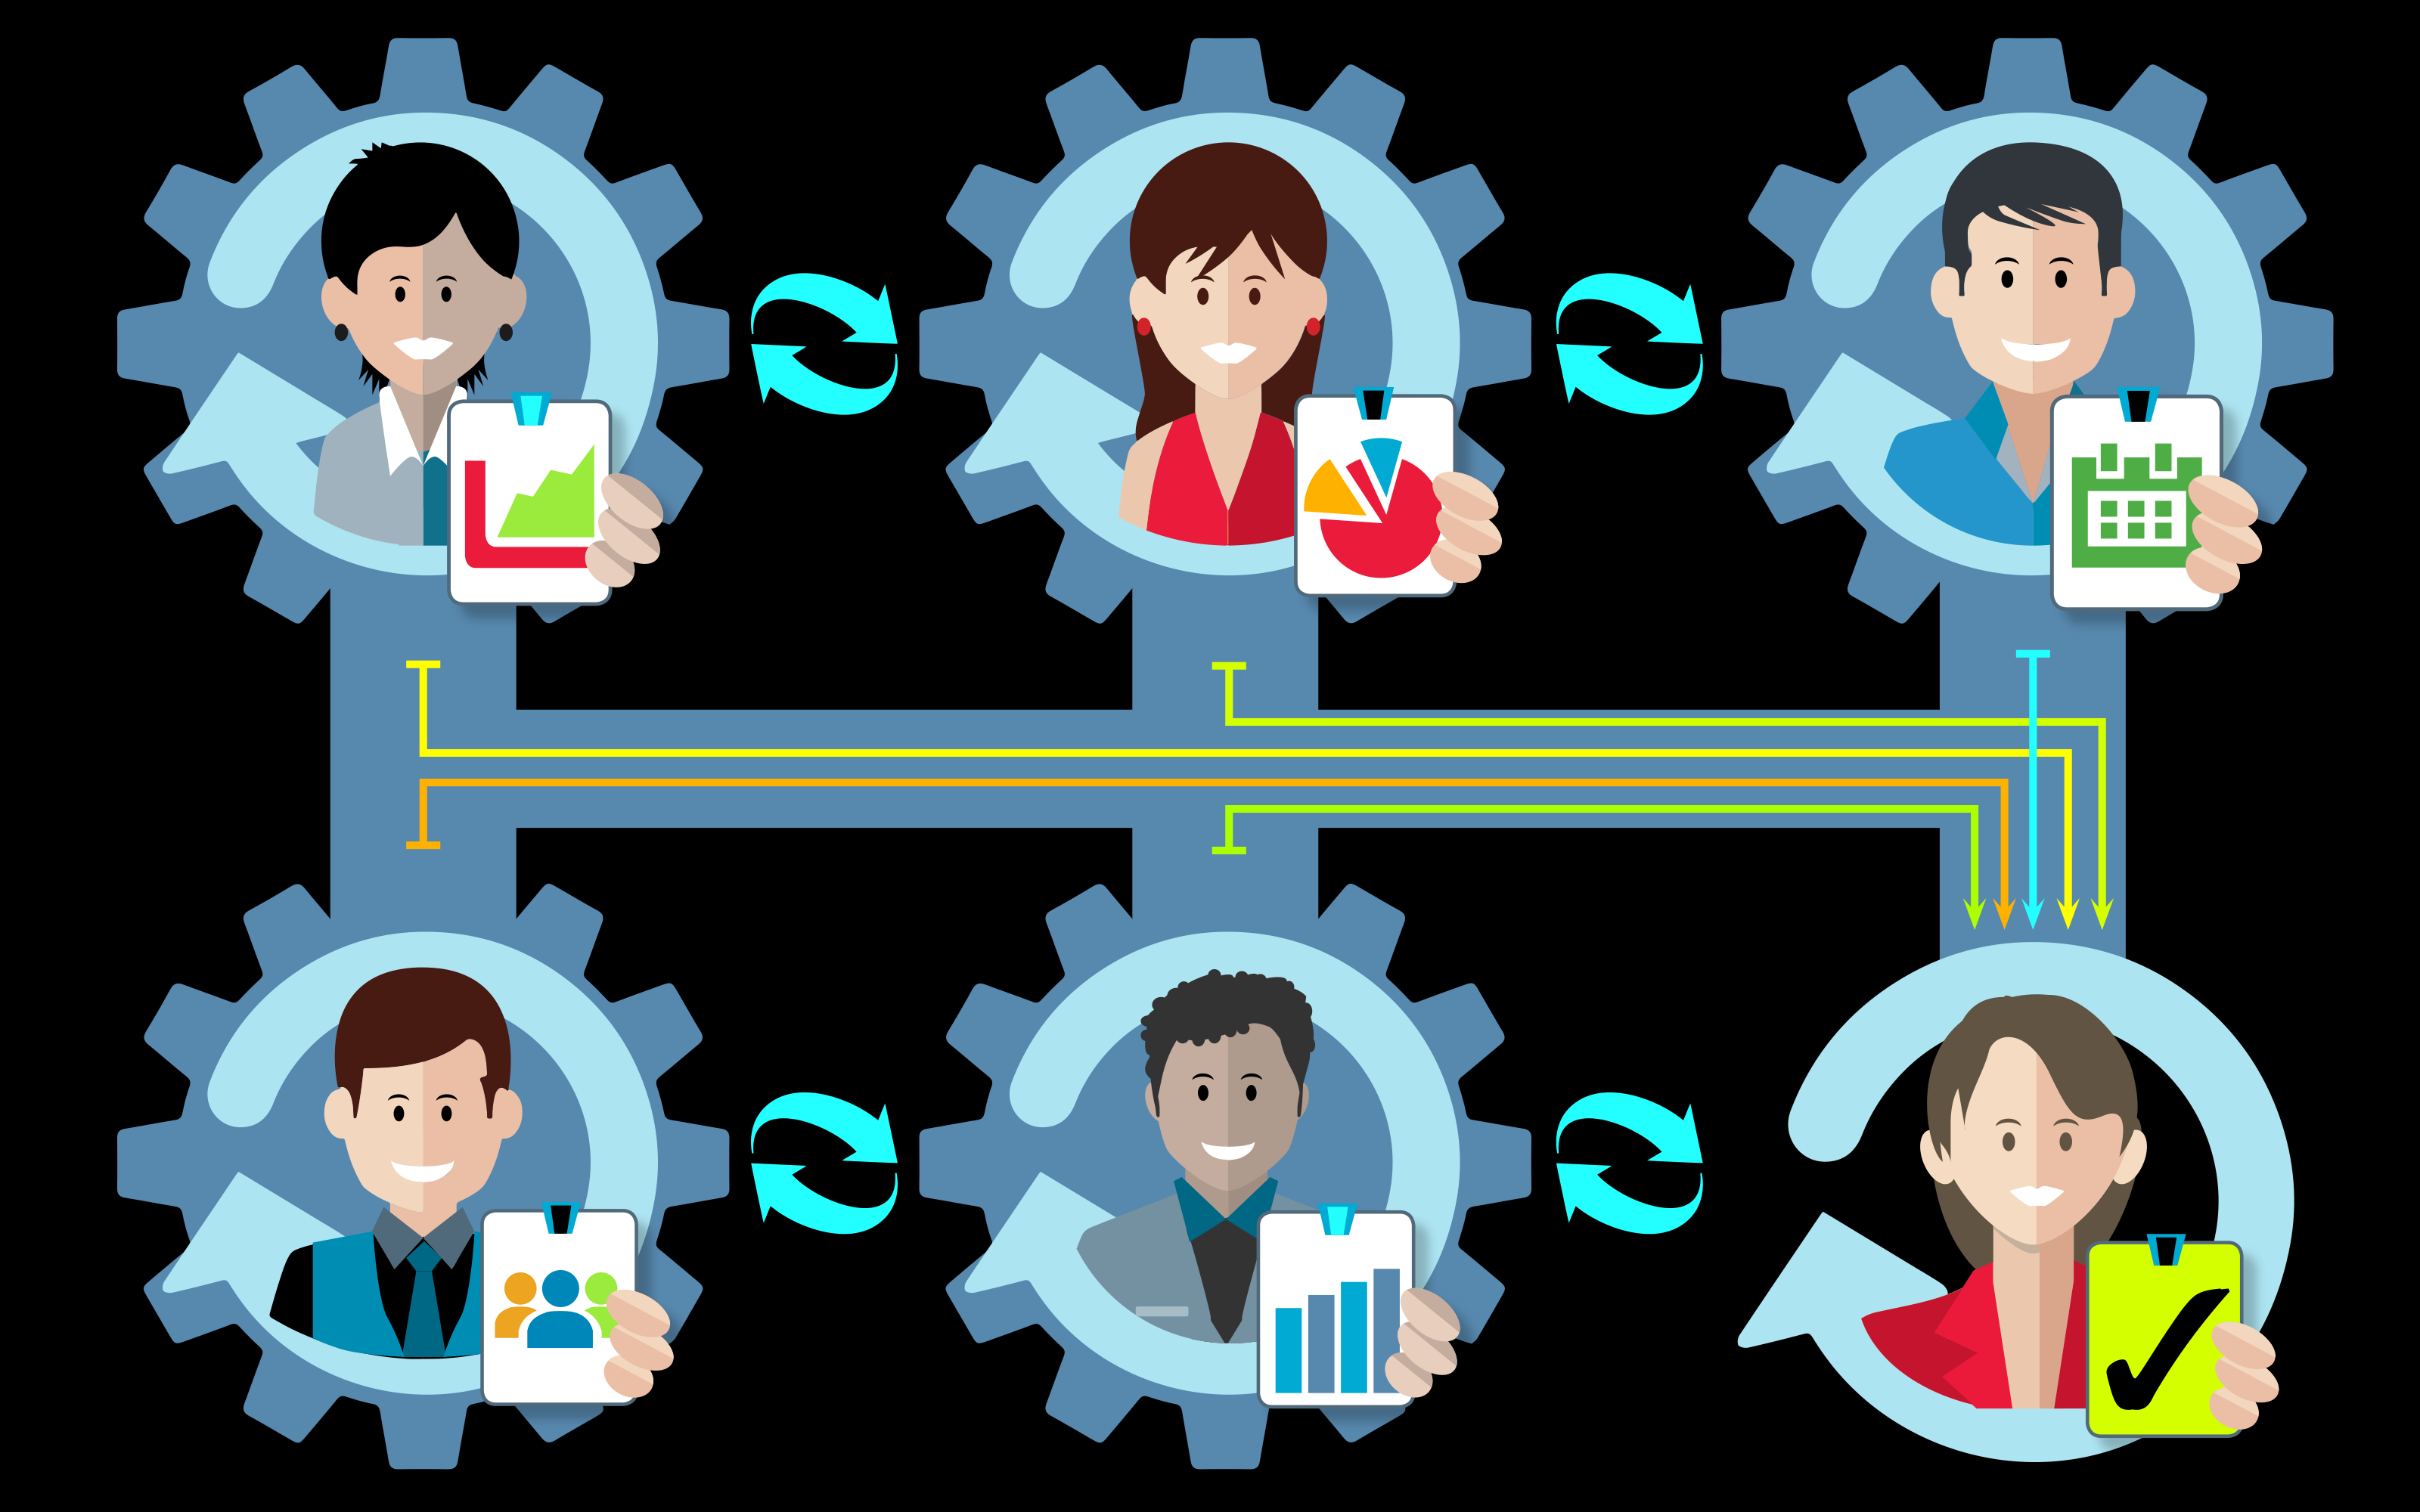 Need help automating your sales report collection? We can do custom development work for you